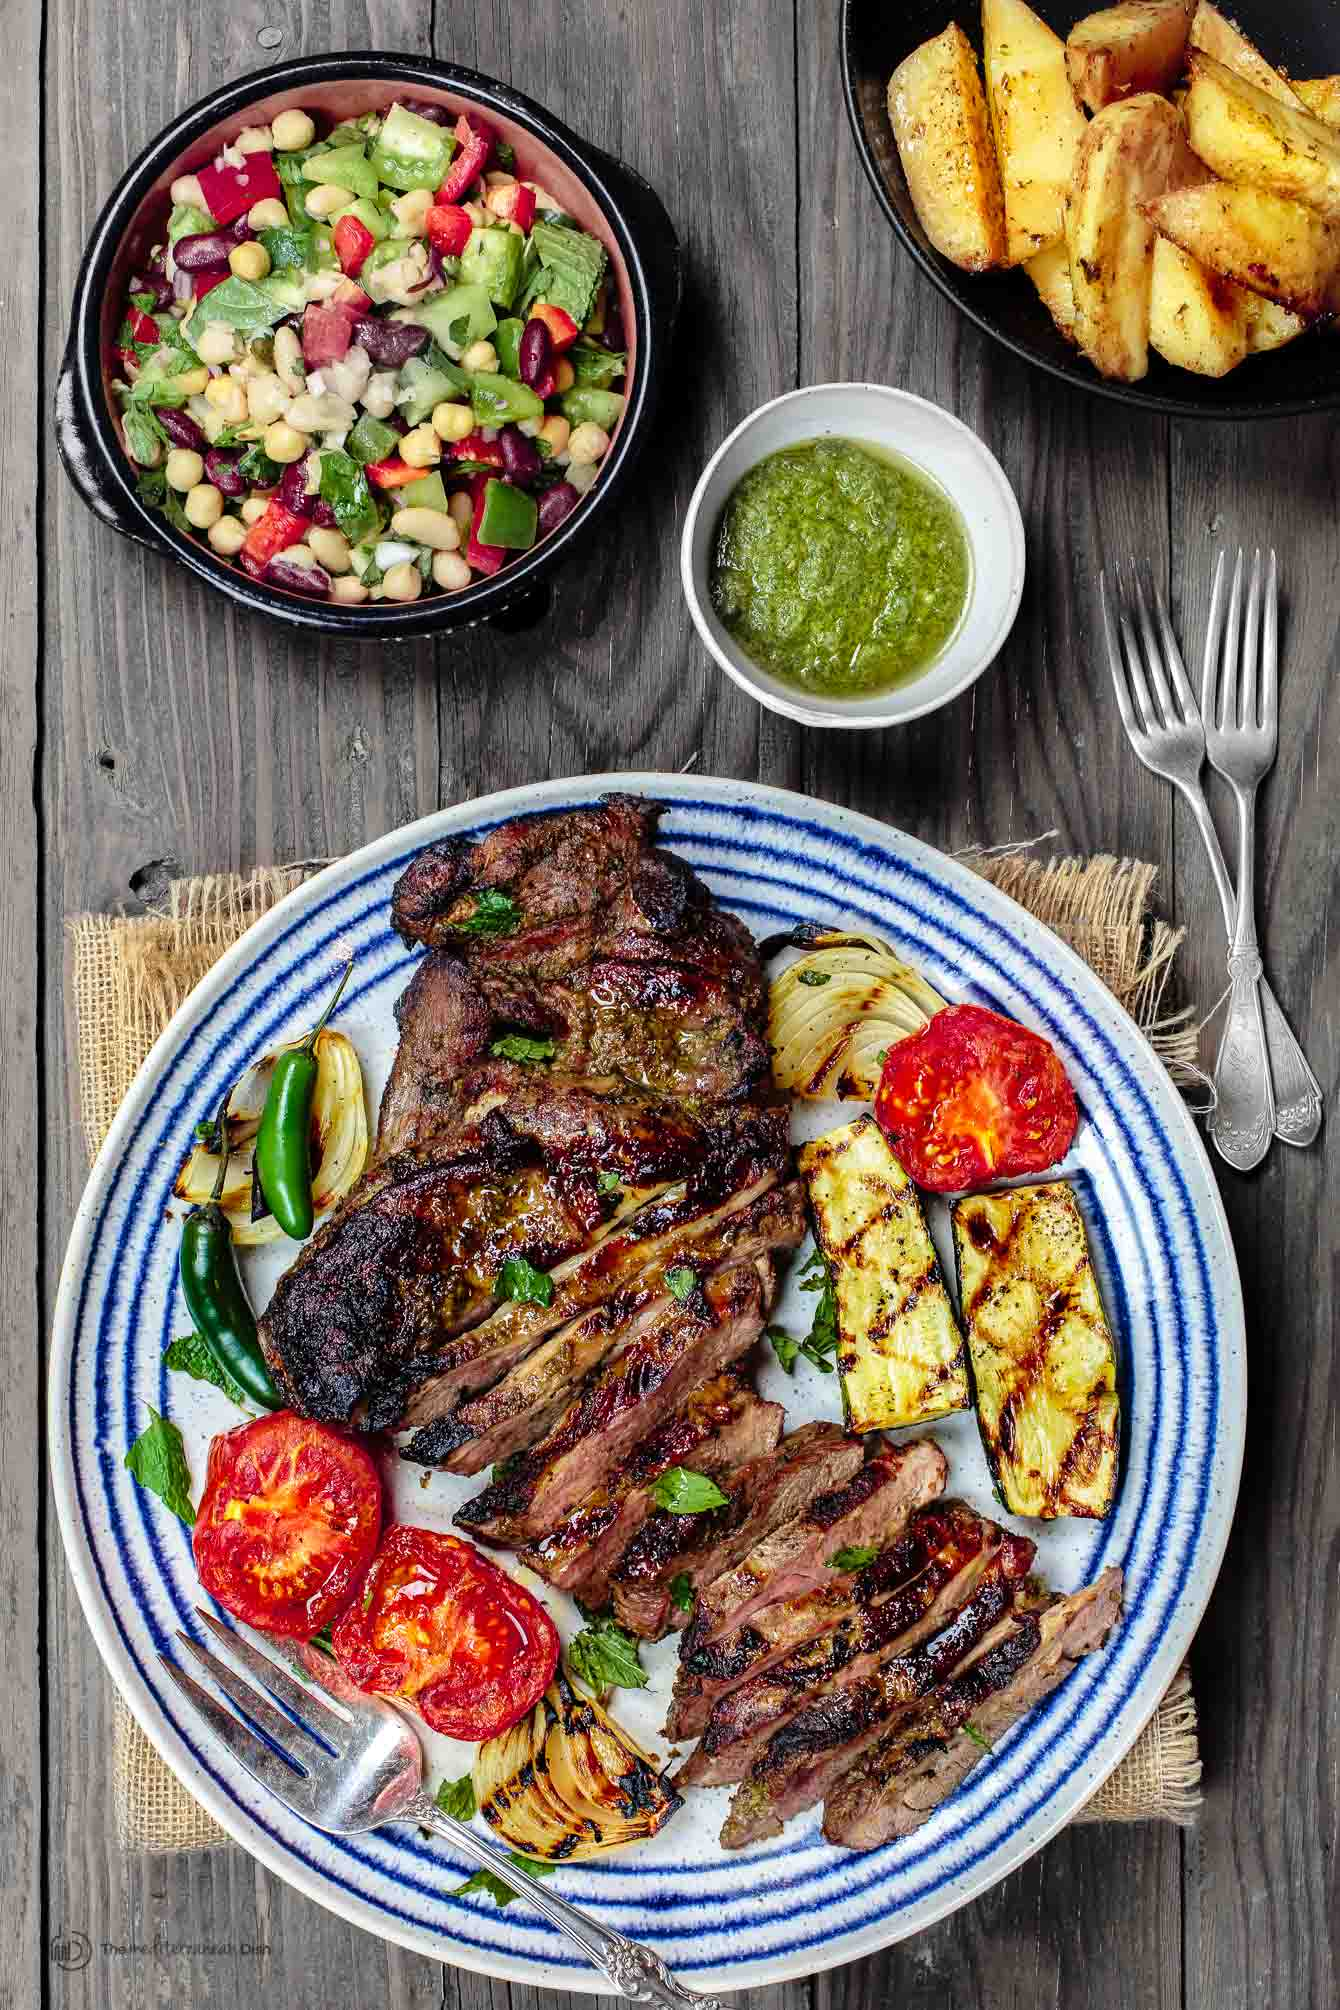 Mediterranean Grilled Lamb Recipe with Mint Pesto | The Mediterranean Dish. Garlic-herb marinated leg of lamb, tenderized and grilled to perfection! Plus mint pesto or Greek Tzatziki sauce and favorite Mediterranean summer sides and salads! See it on TheMediterraneanDish.com